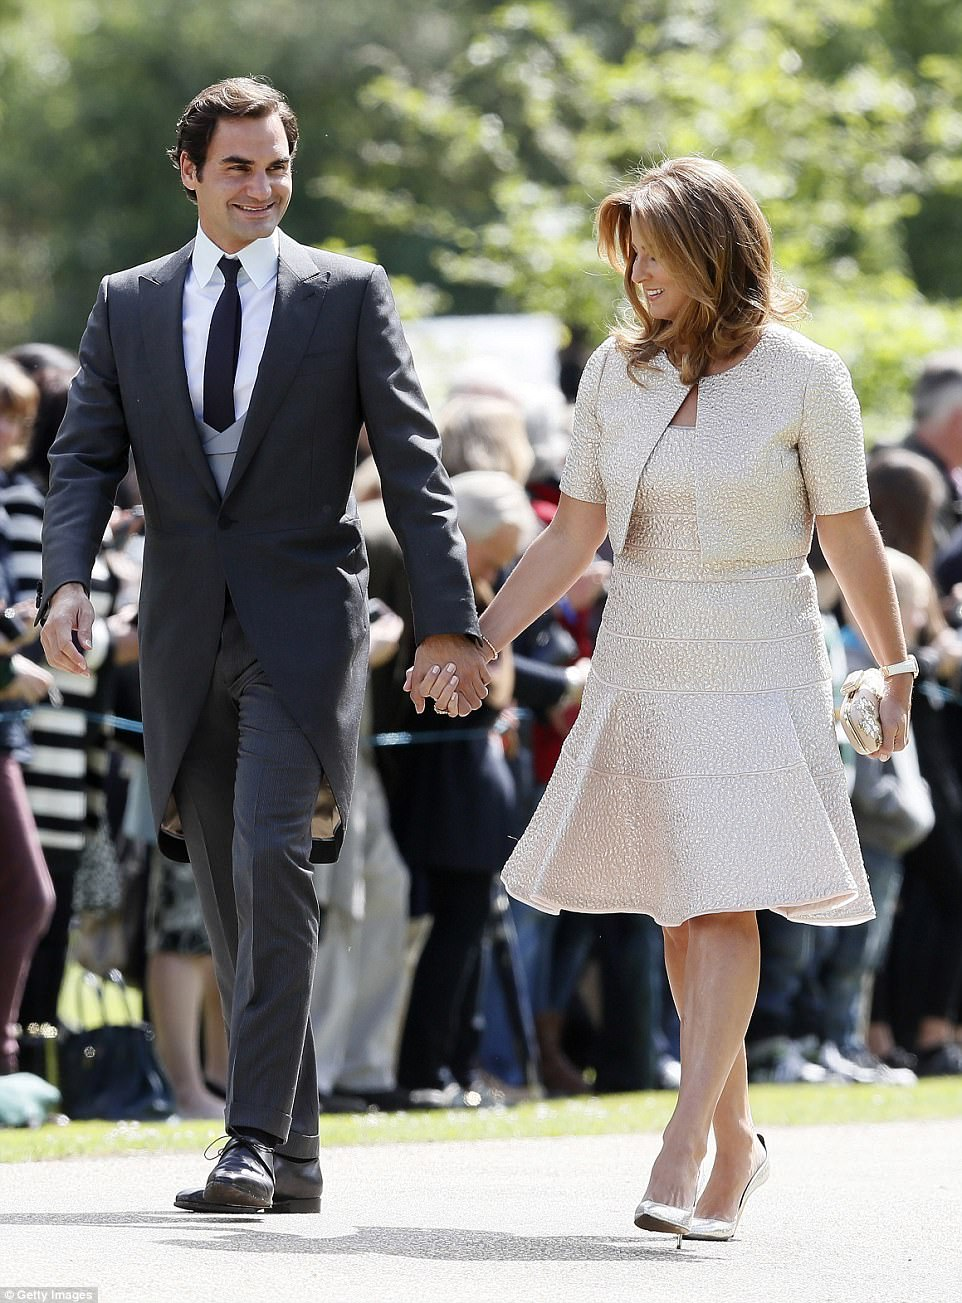 Roger Federer was joined by his wife Mirka, 39, for the nuptials of Pippa Middleton and James Matthews in Berkshire